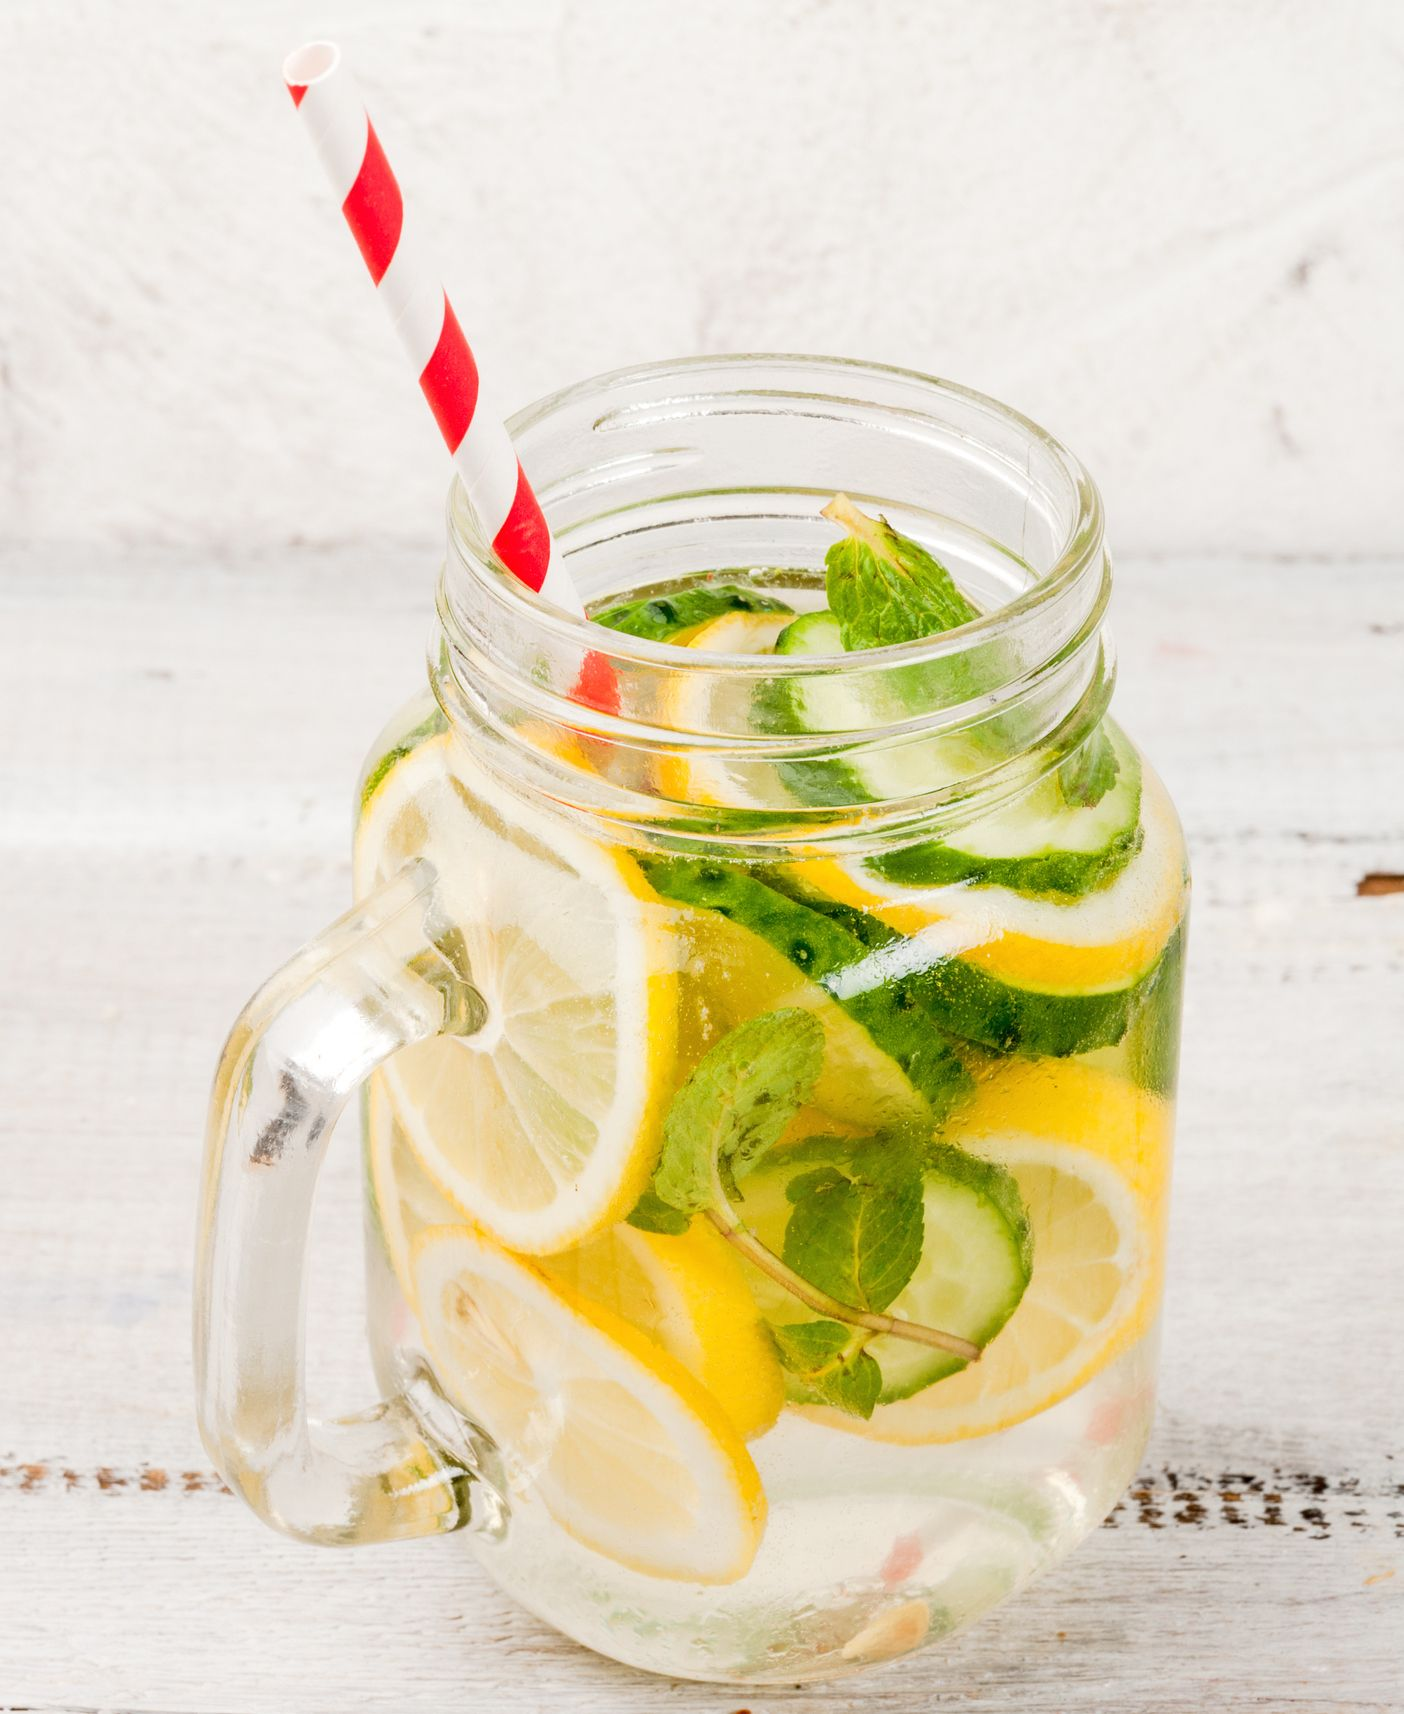 Infused refreshing waters